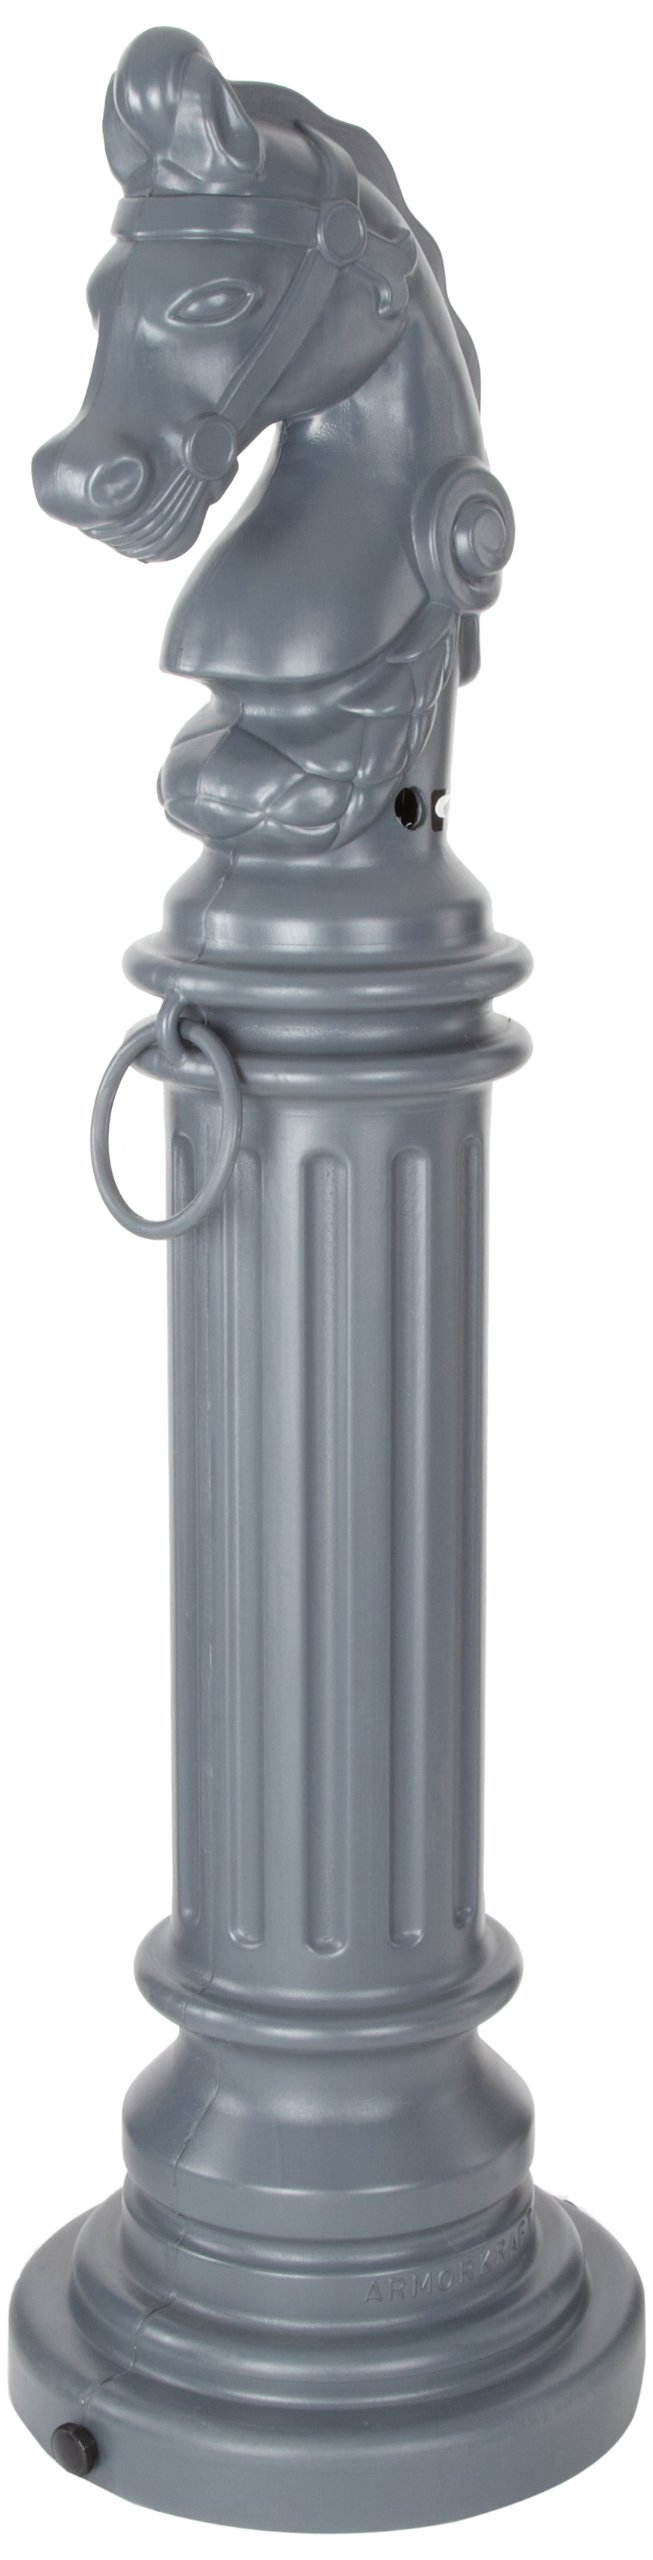 Eagle 1212GRAY SafeSmoker Decorative Cigarette Receptacle with Rubber Bottom, Hitching Post, 12-1/2'' Diameter x 44-1/2'' Height, Gray